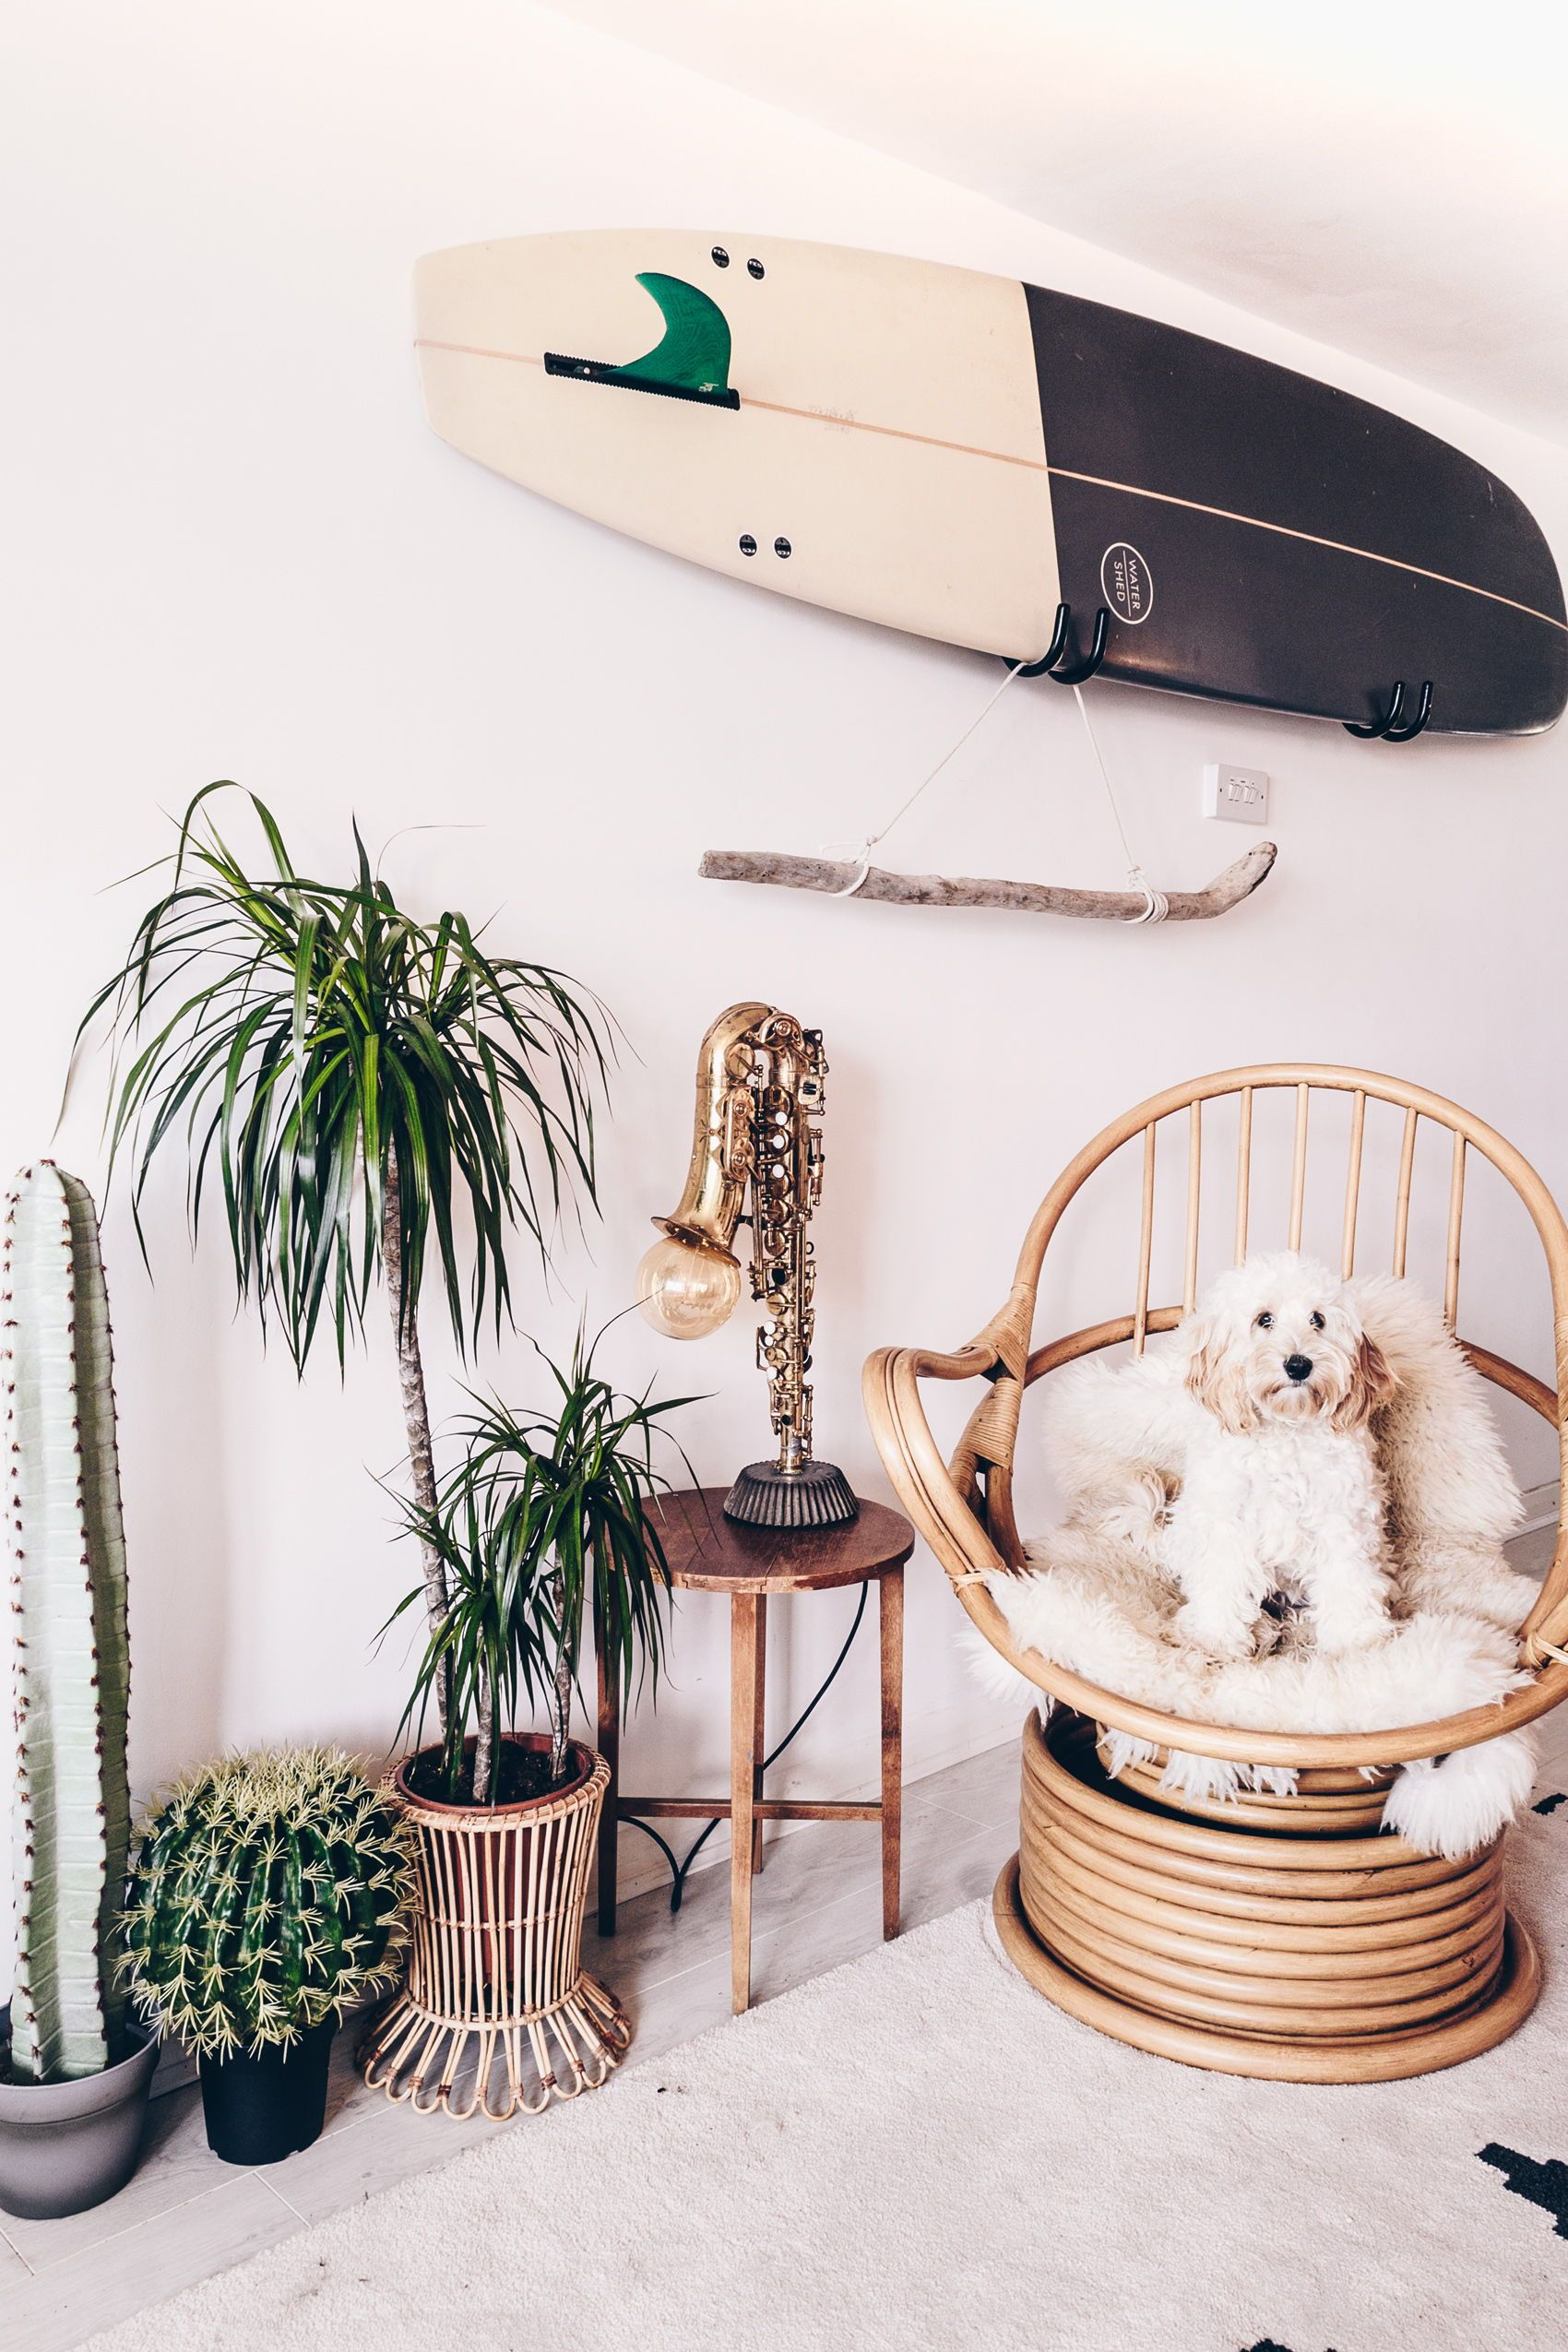 SurfGirl Issue 15  Deco chambre, Deco surf, Amenagement maison